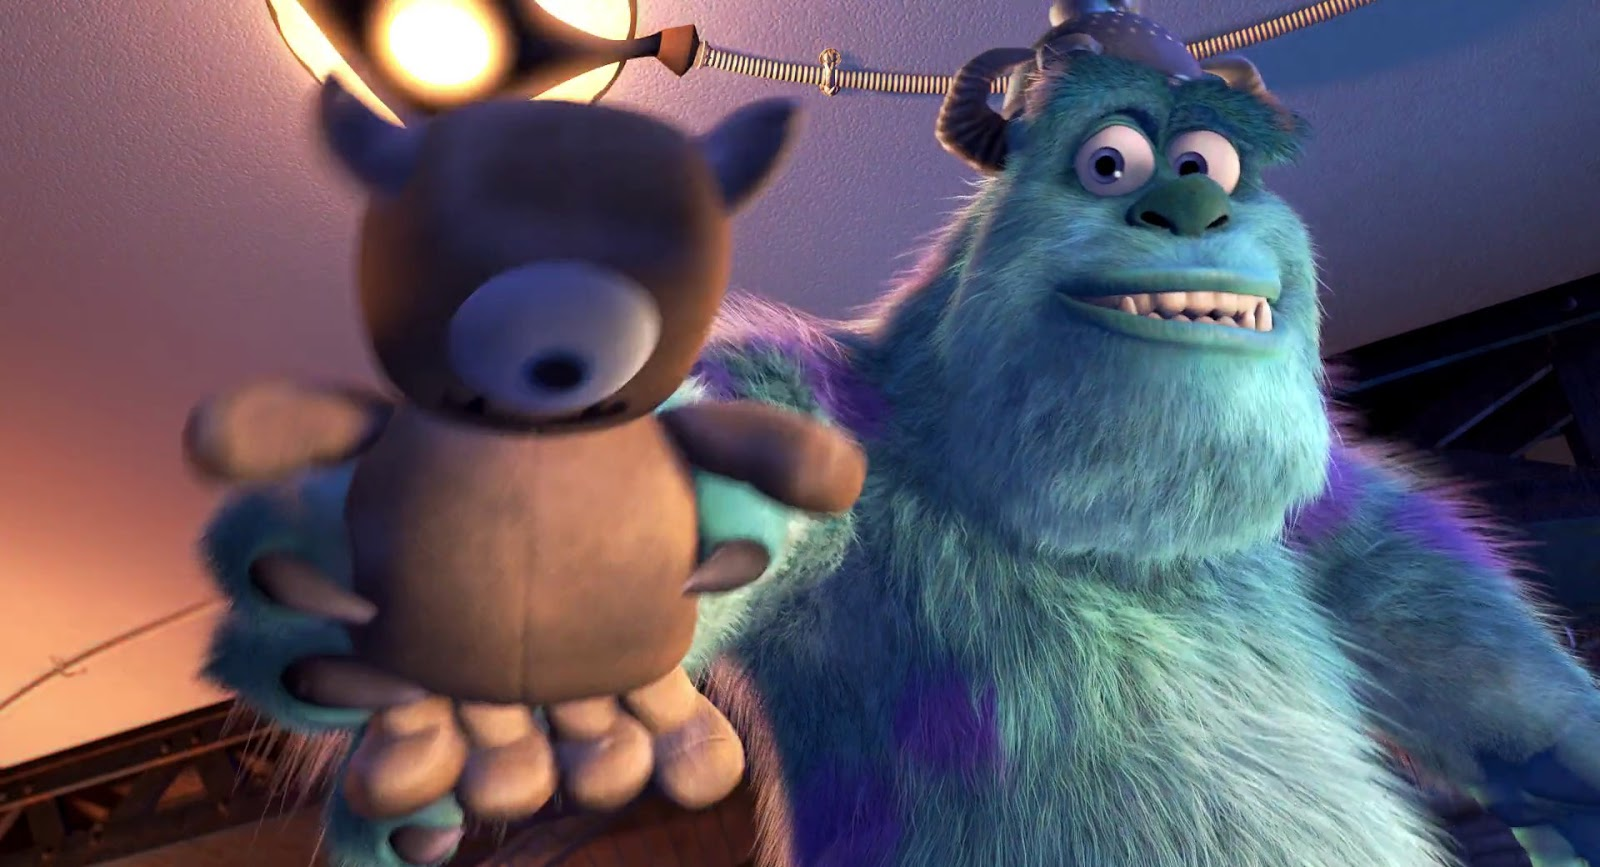 Sulley. Monsters Inc, 2001. ©Disney/Pixar.